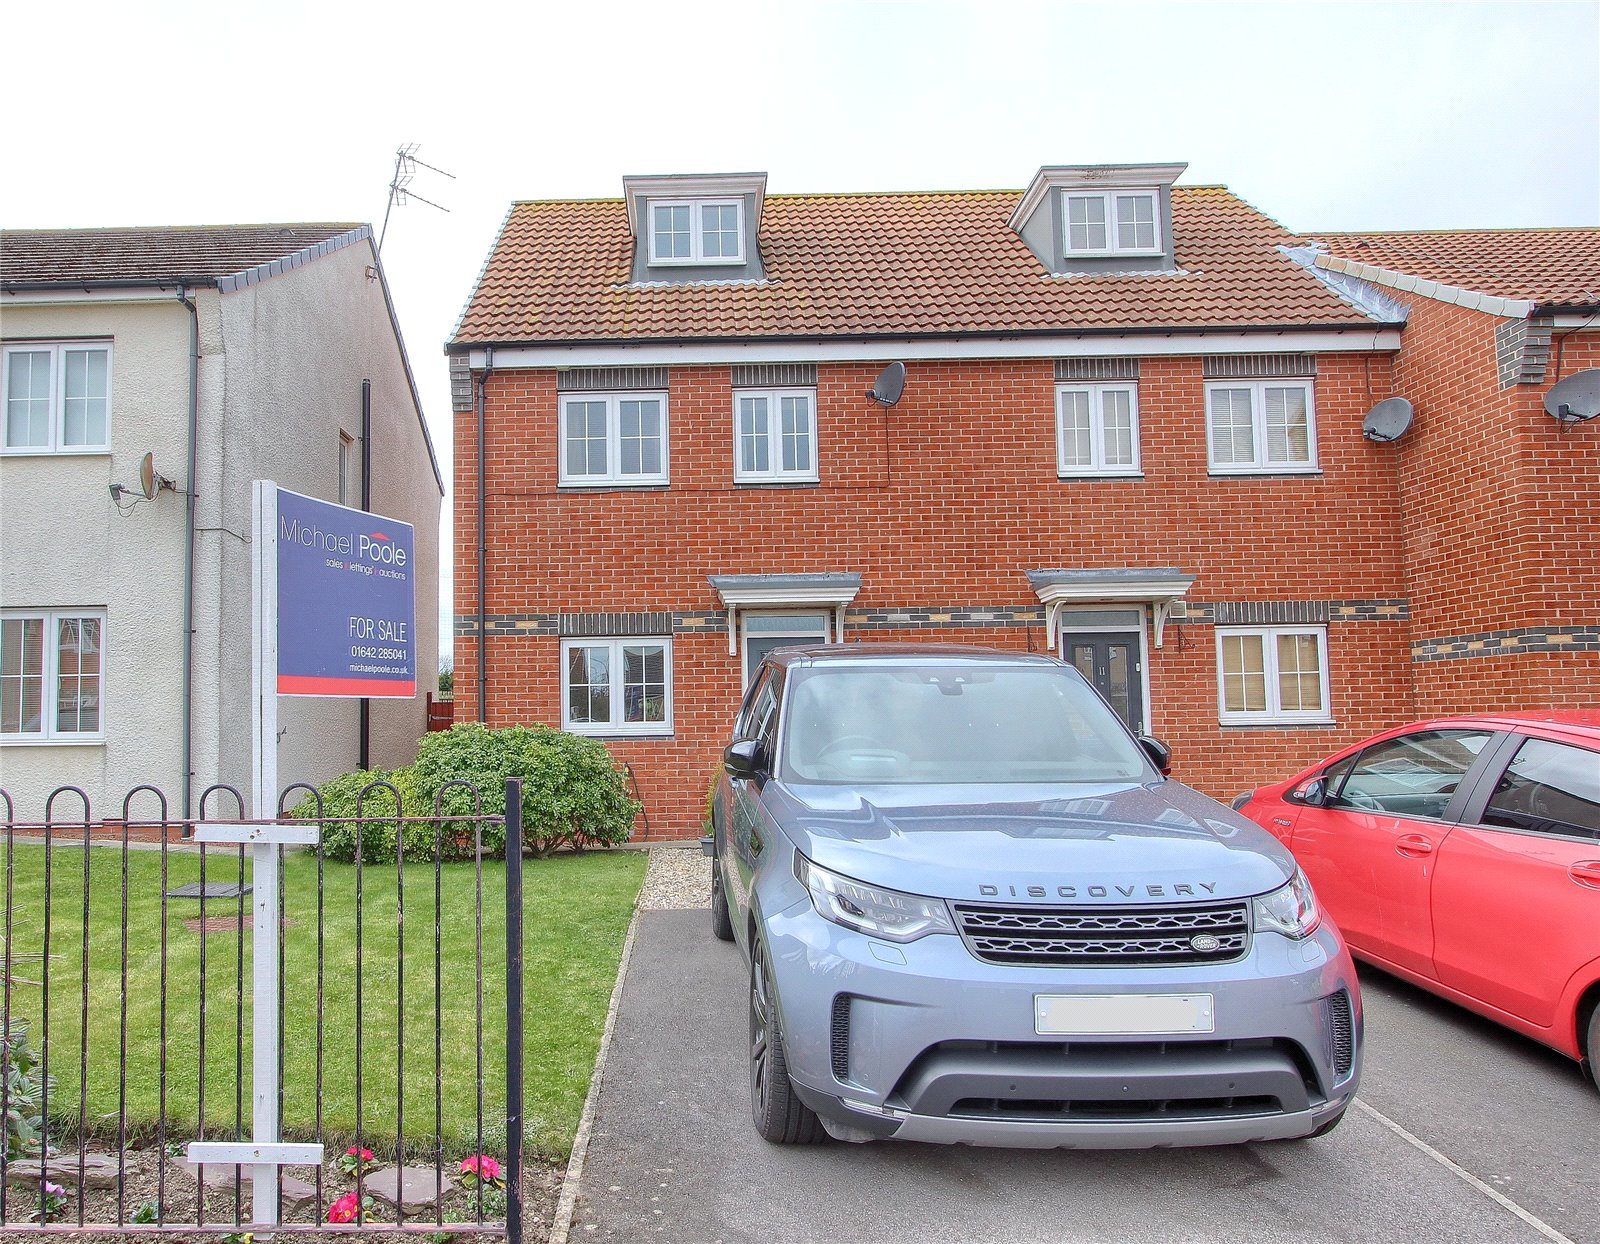 3 bed house for sale in Greenfield Mews, Marske-by-the-Sea 1